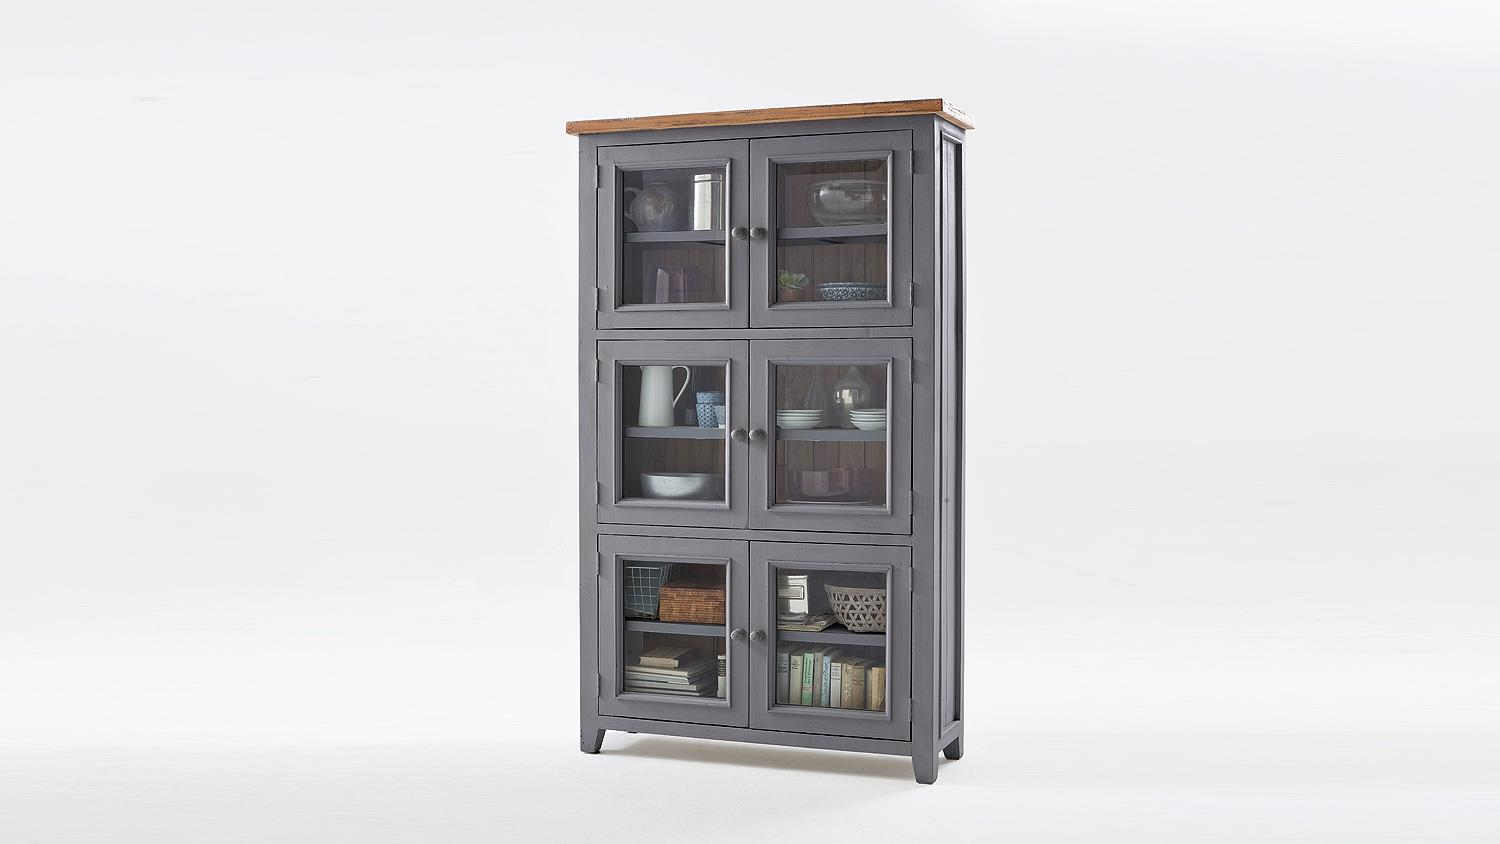 vitrine byron schrank kiefer massiv antik grau vintage braun. Black Bedroom Furniture Sets. Home Design Ideas